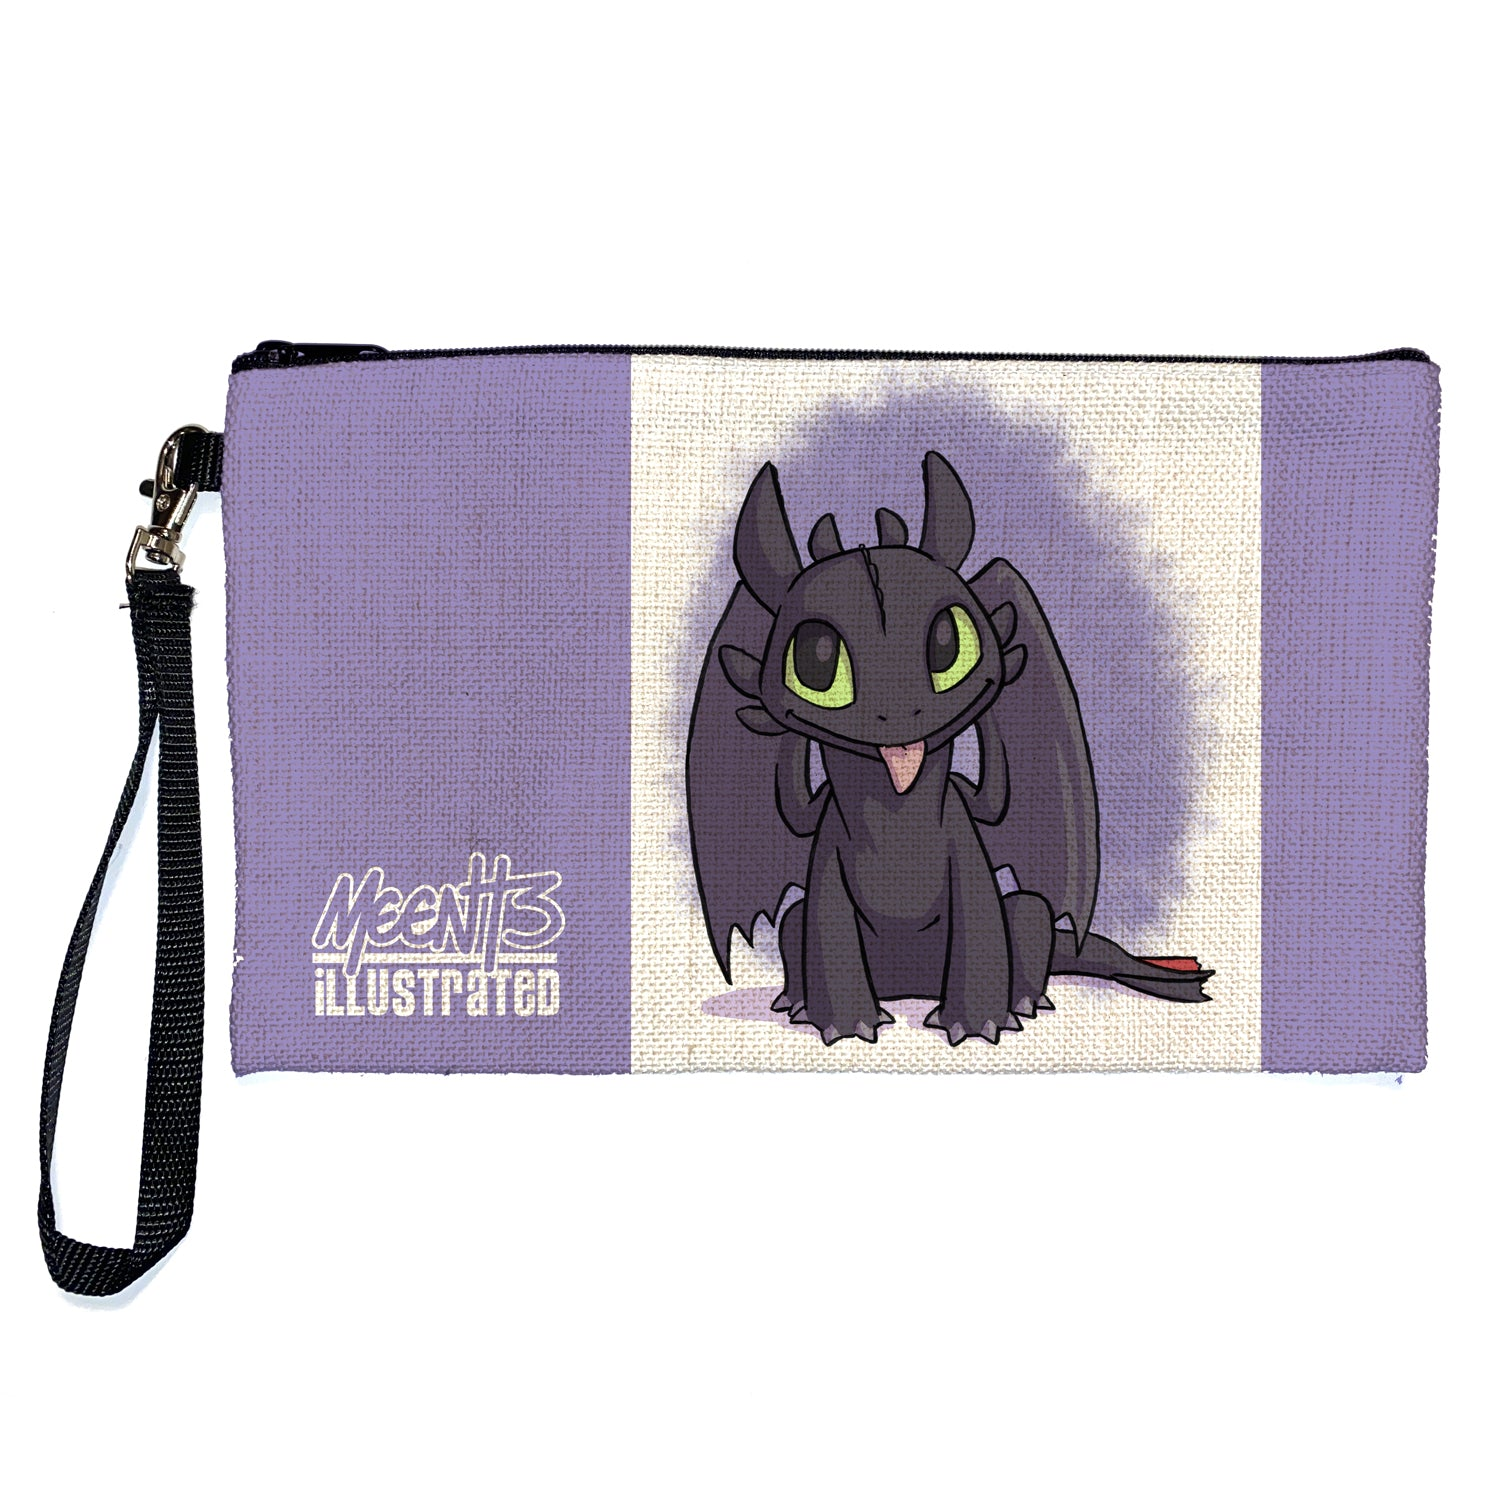 Toothless - Character - Large Pencil/Device Bag